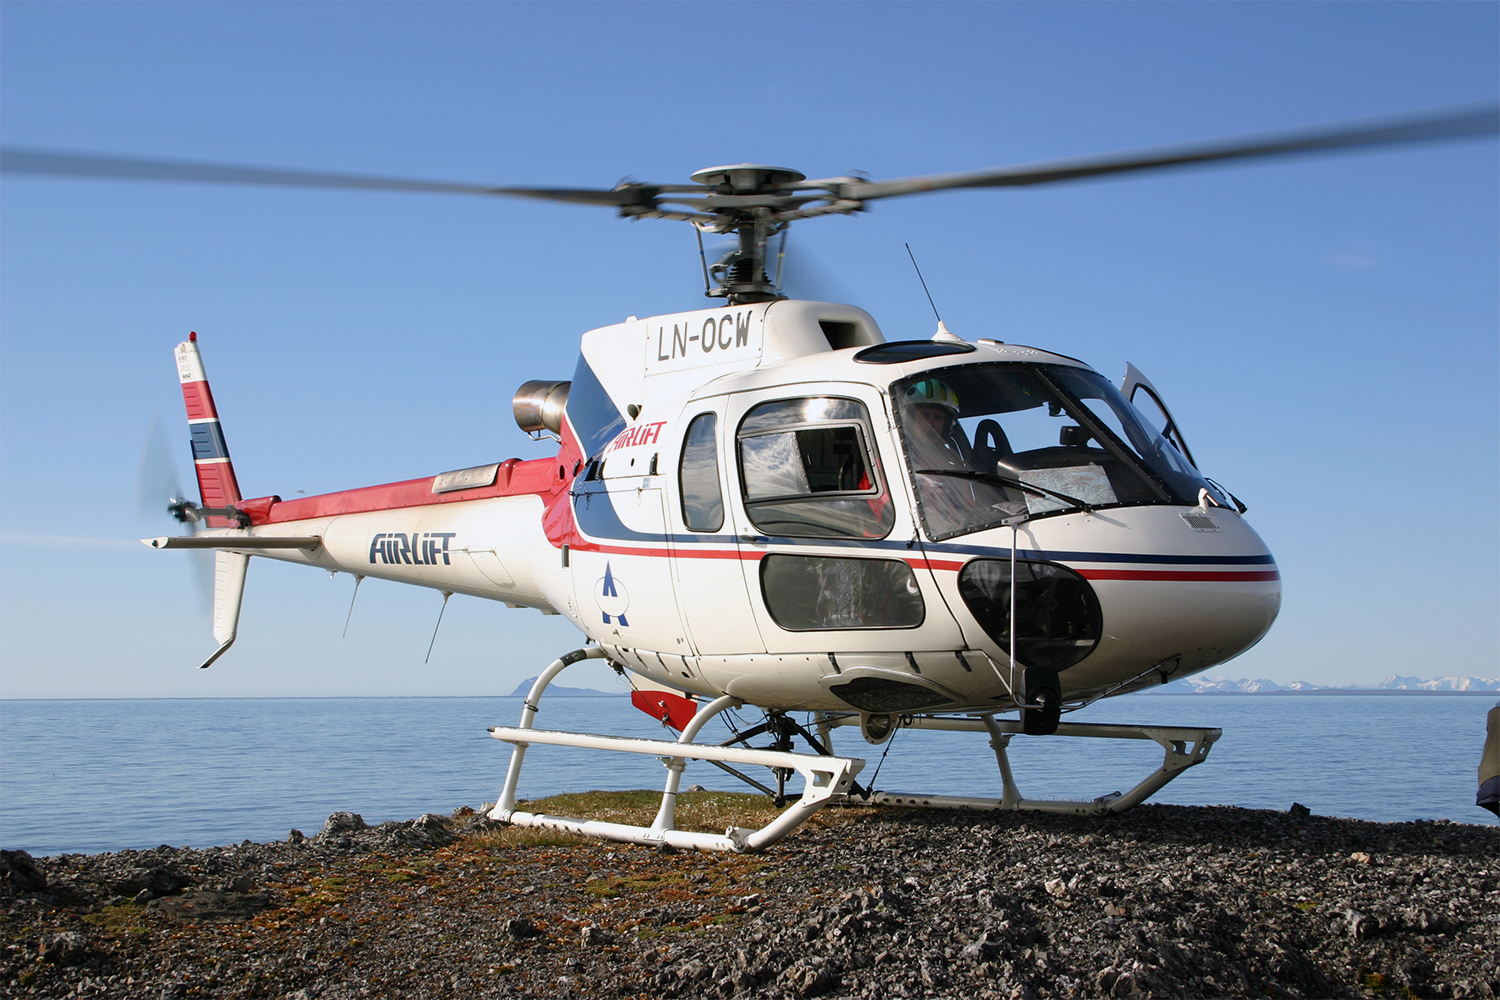 Airbus Helicopters AS350 Ecureuil